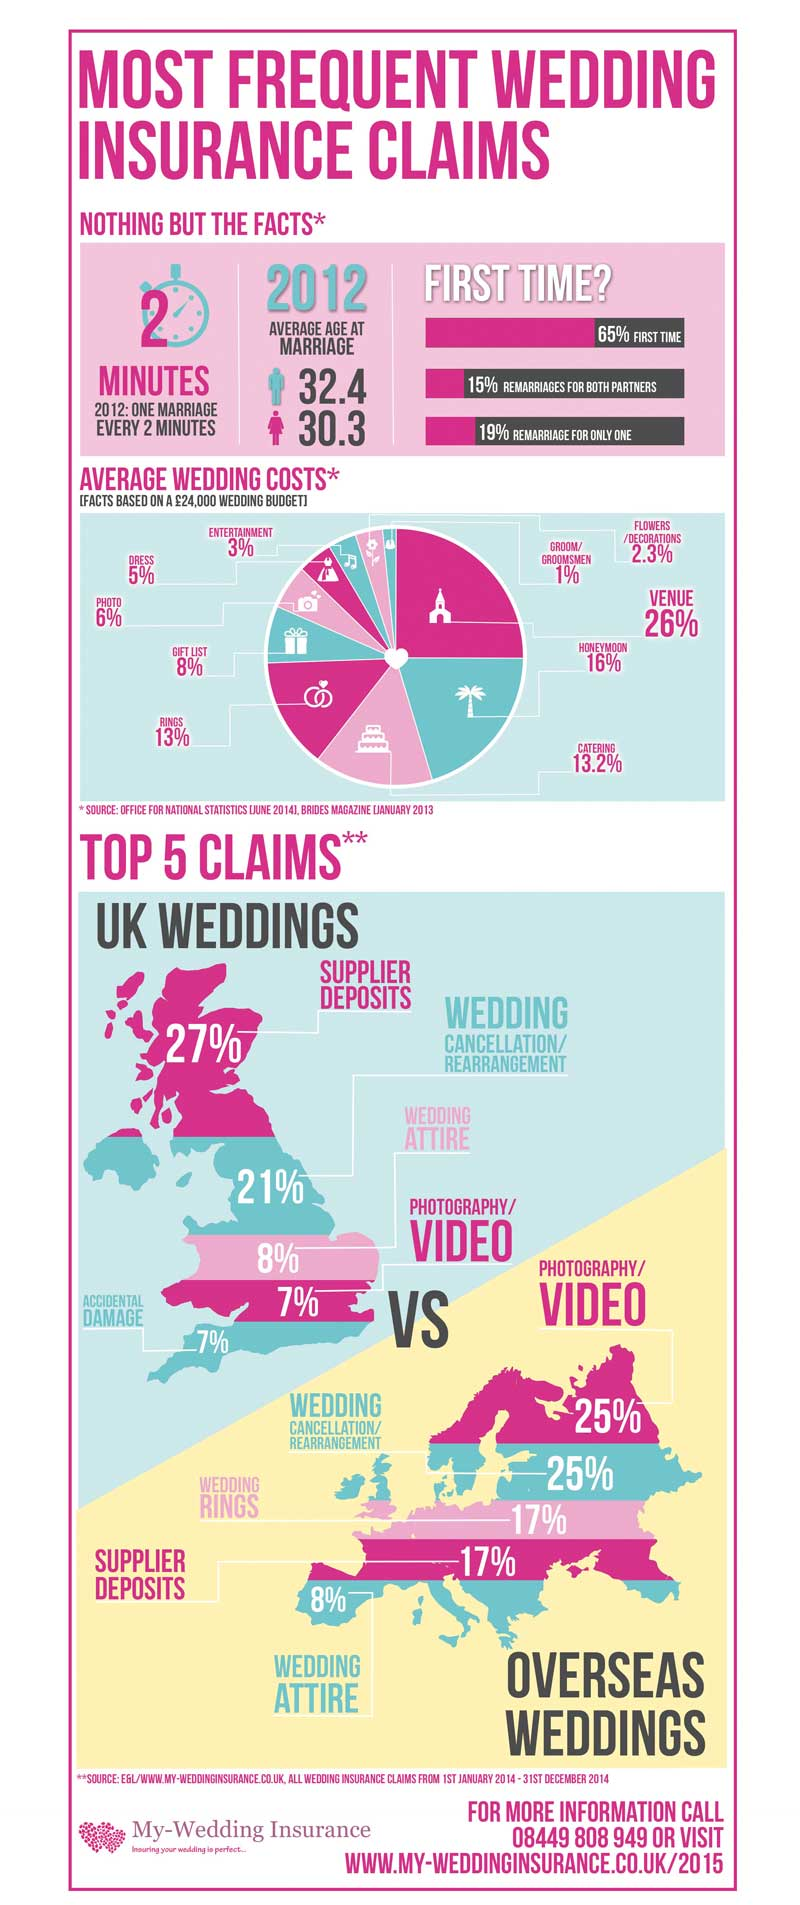 Things that are most likely to go wrong on your wedding day